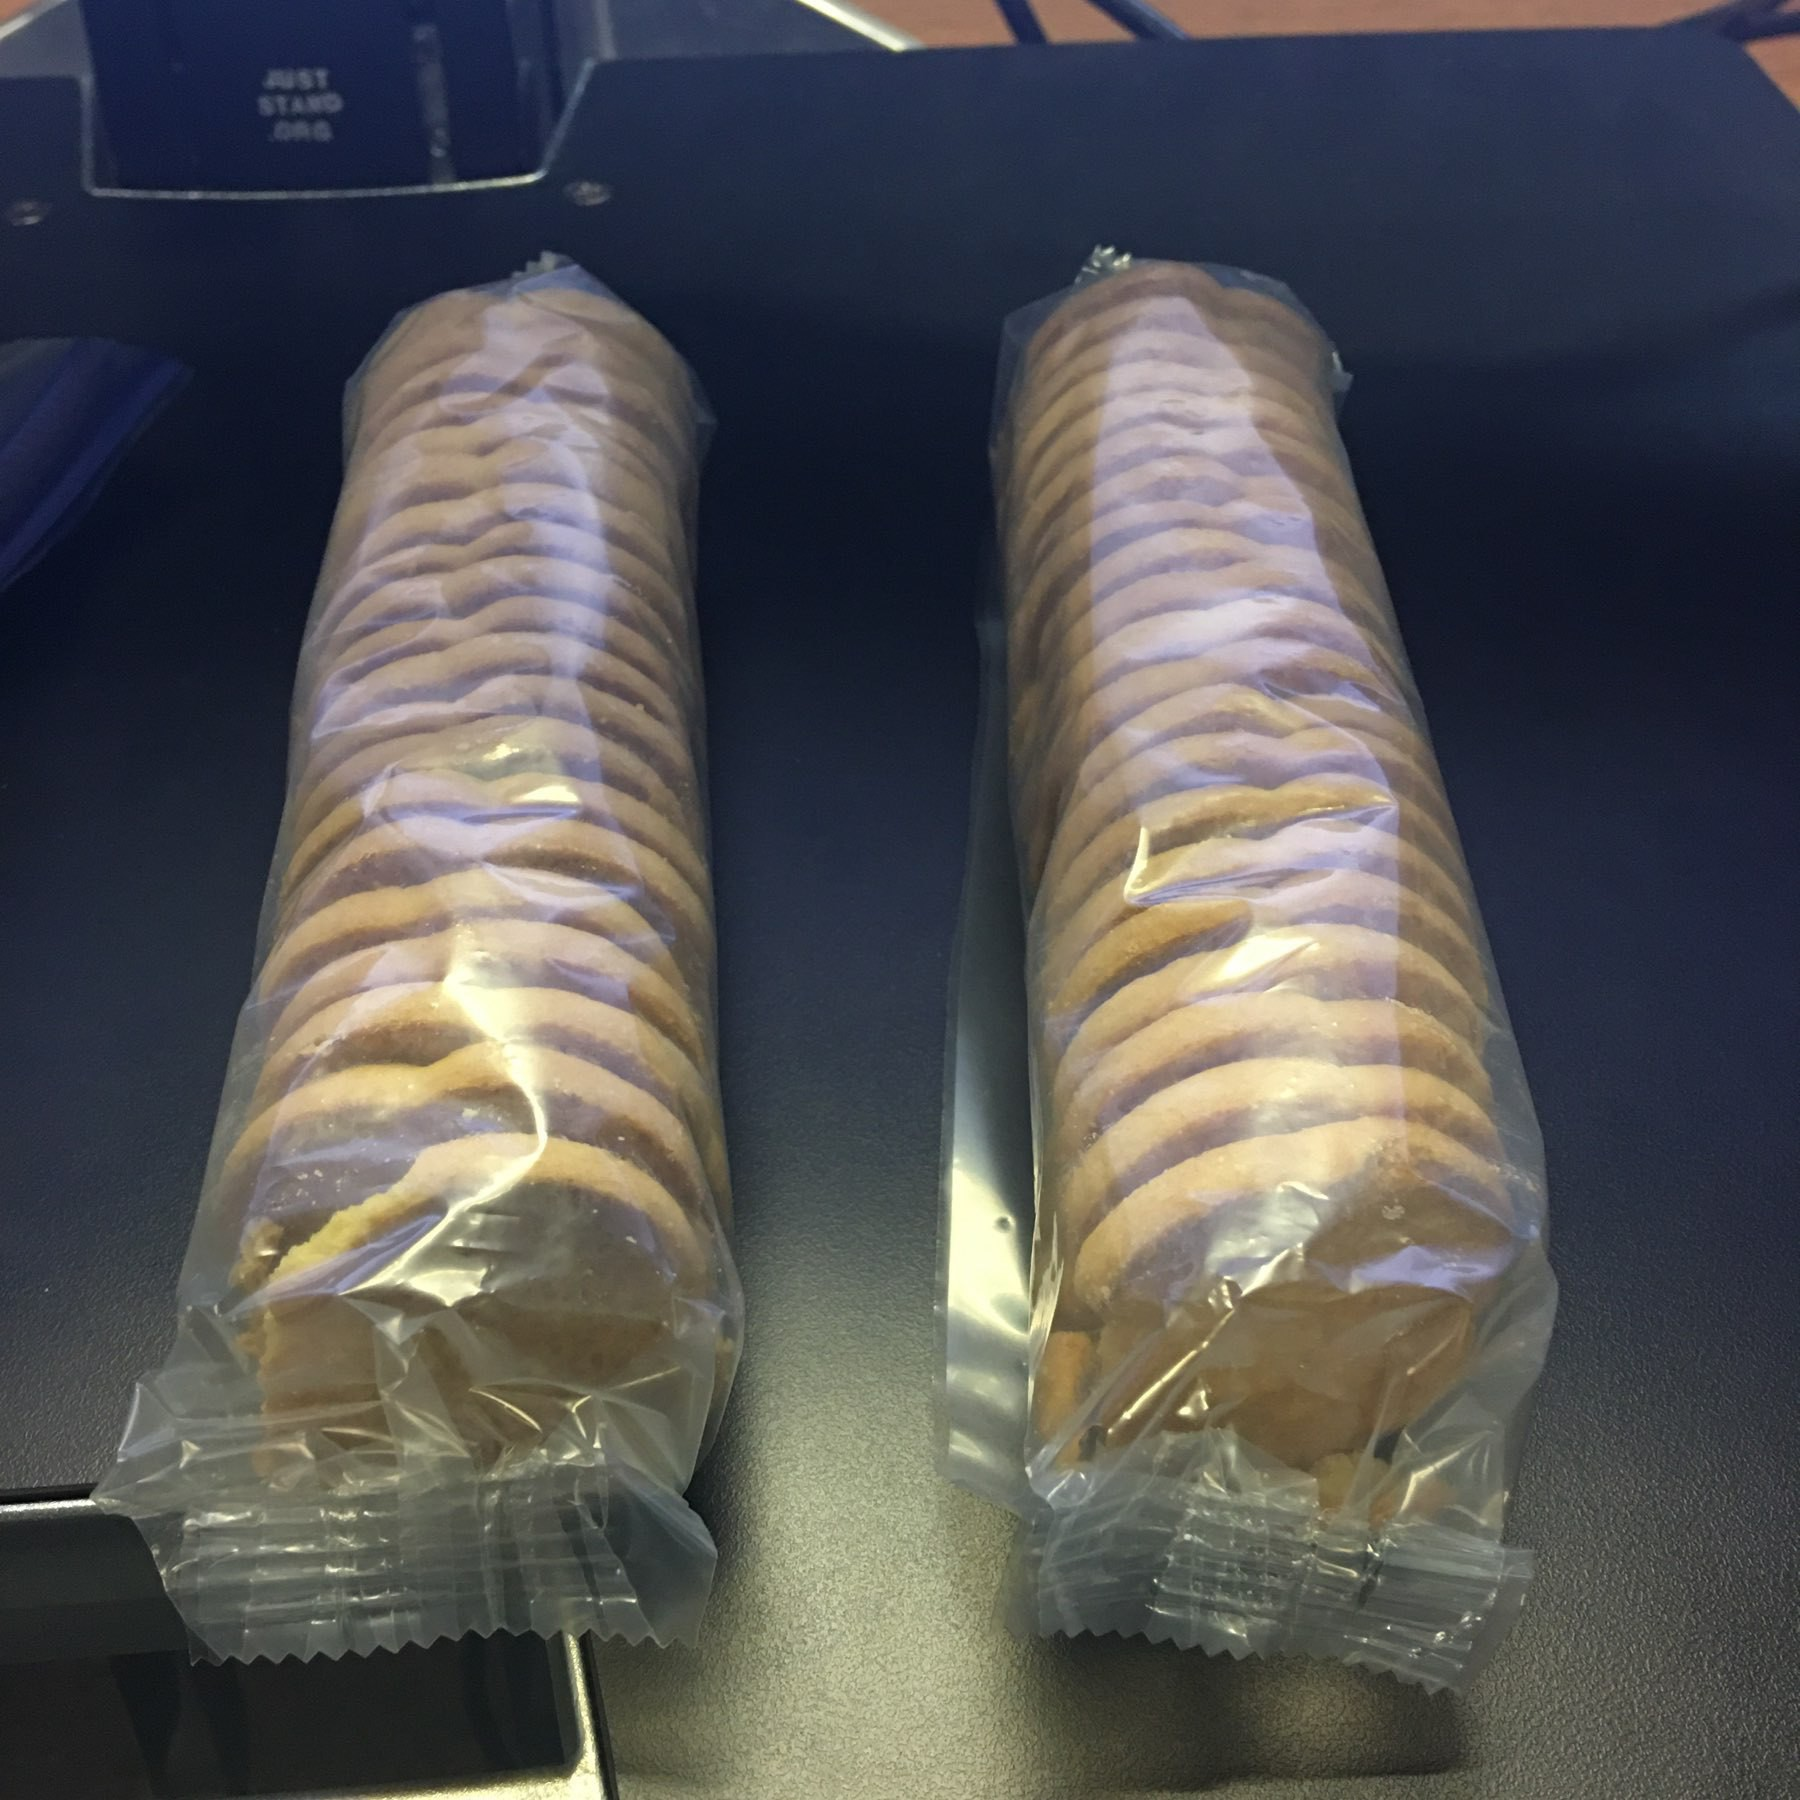 Two rows of cookies.